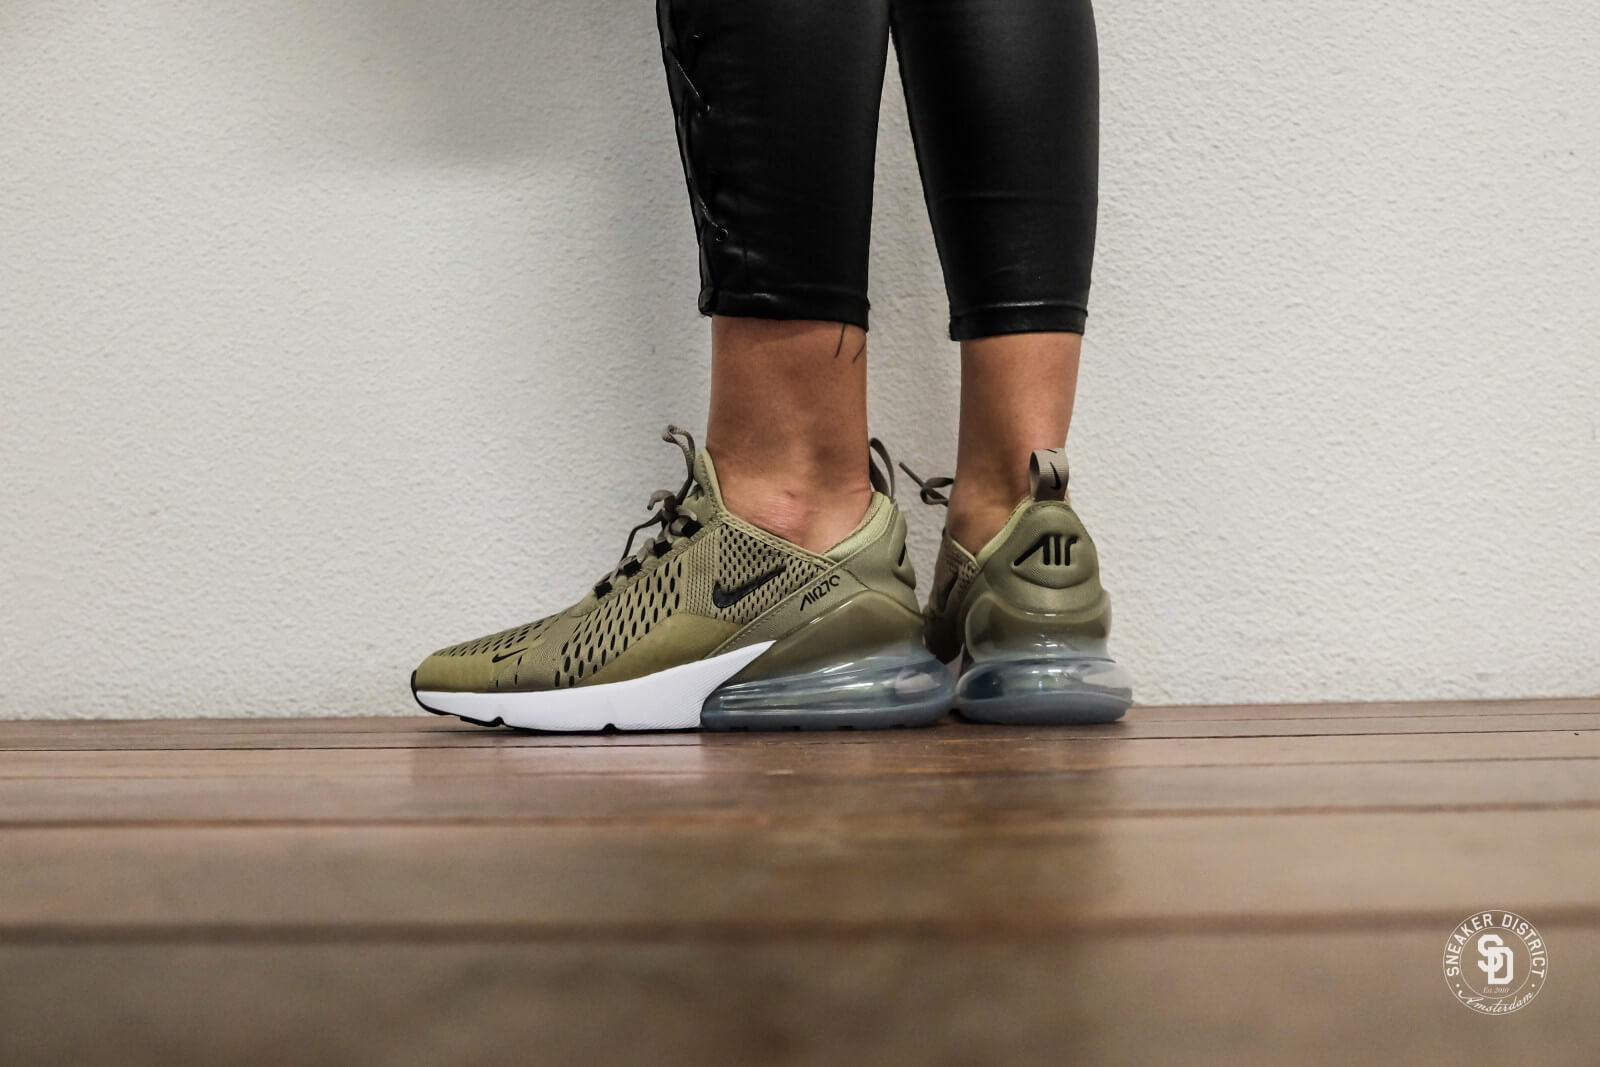 Nike Women's Air Max 270 Neutral Olive/Black-Barely Volt